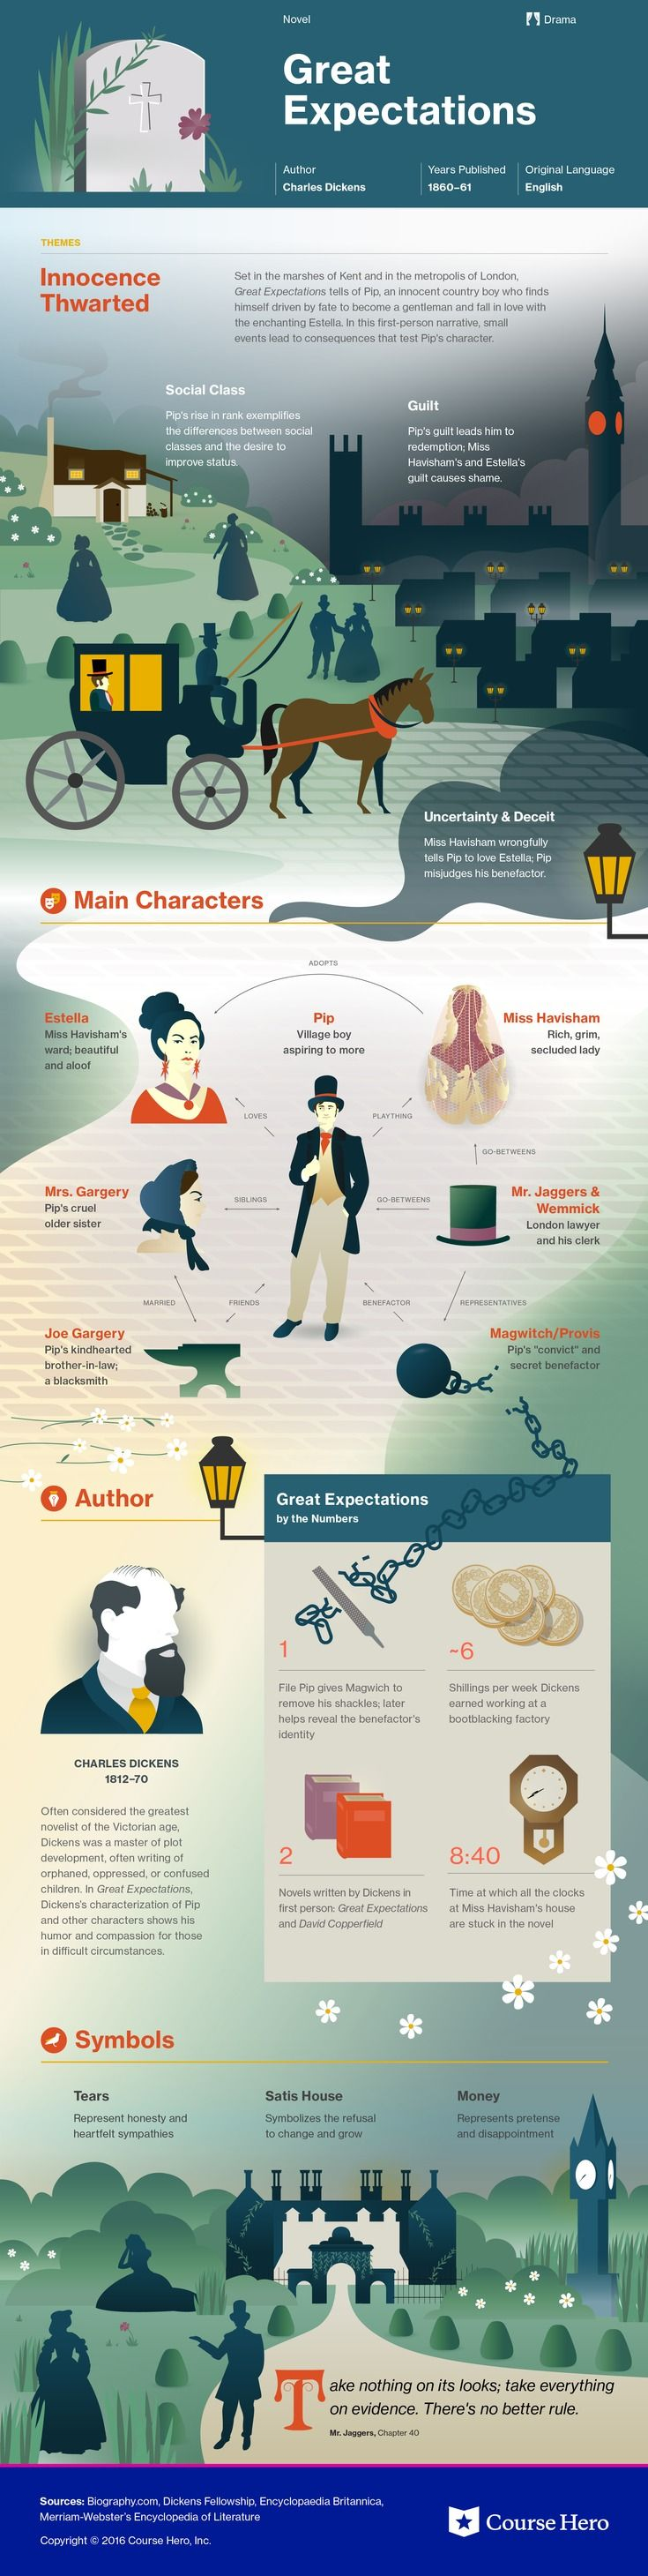 This @CourseHero infographic on Great Expectations is both visually stunning and informative!